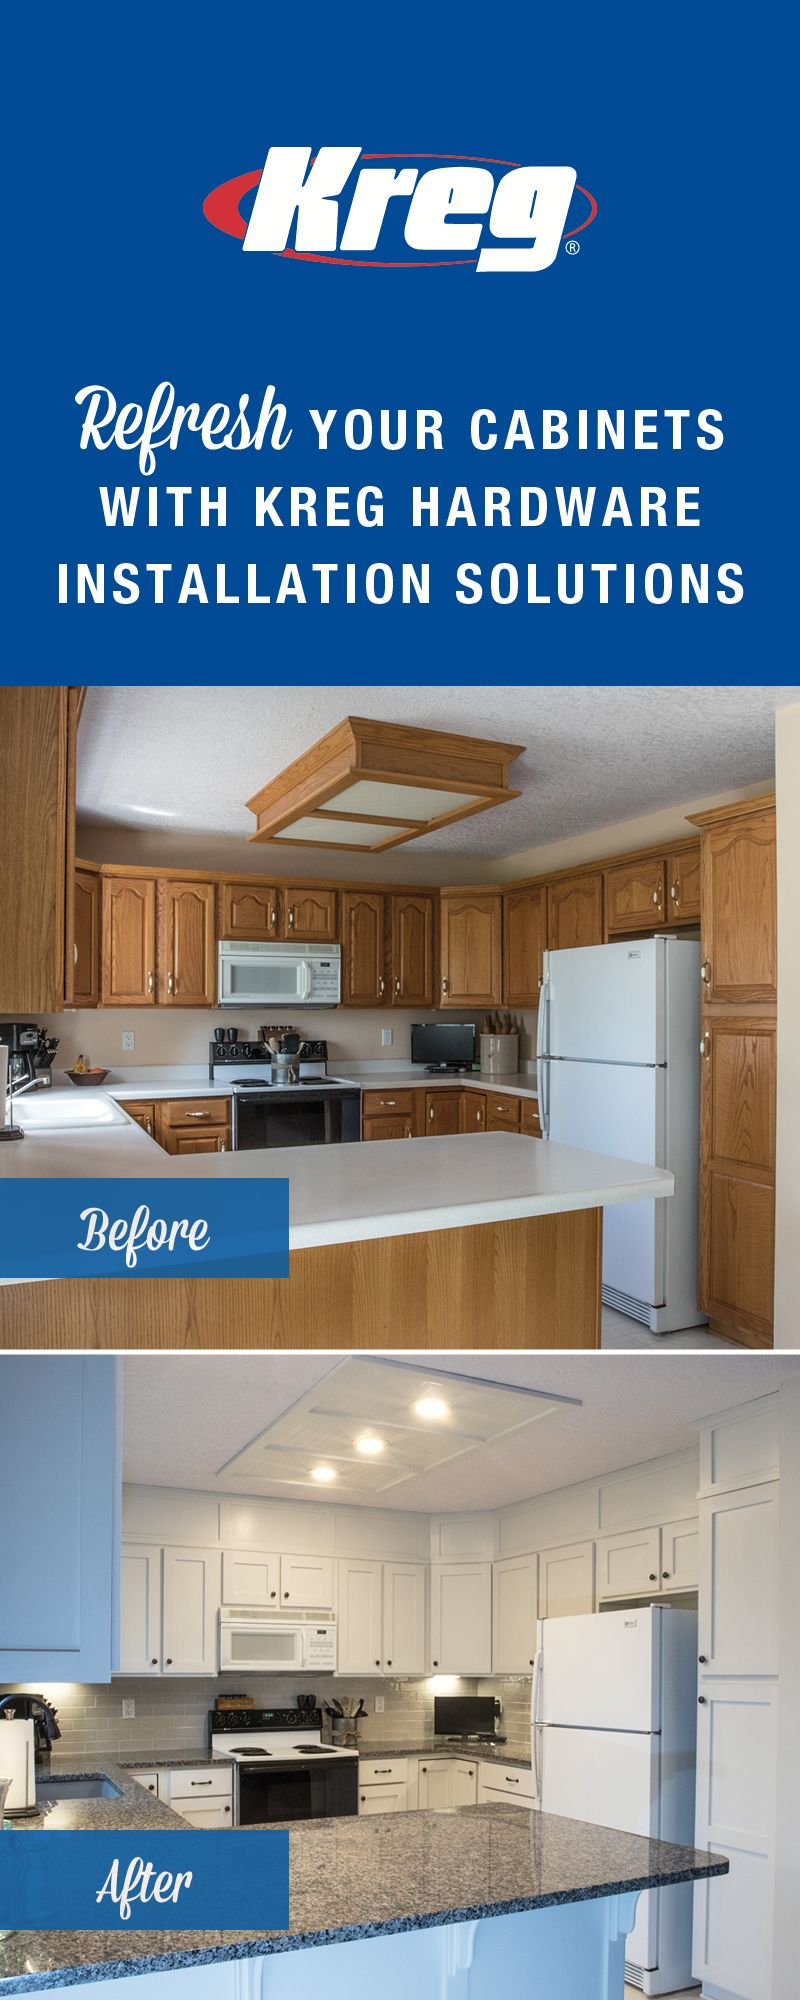 Transform Your Cabinets With Kreg Hardware Installation Solutions They Make It Easy By Allowing You To Conf Kreg Jig Projects Adjustable Shelving Kitchen Redo